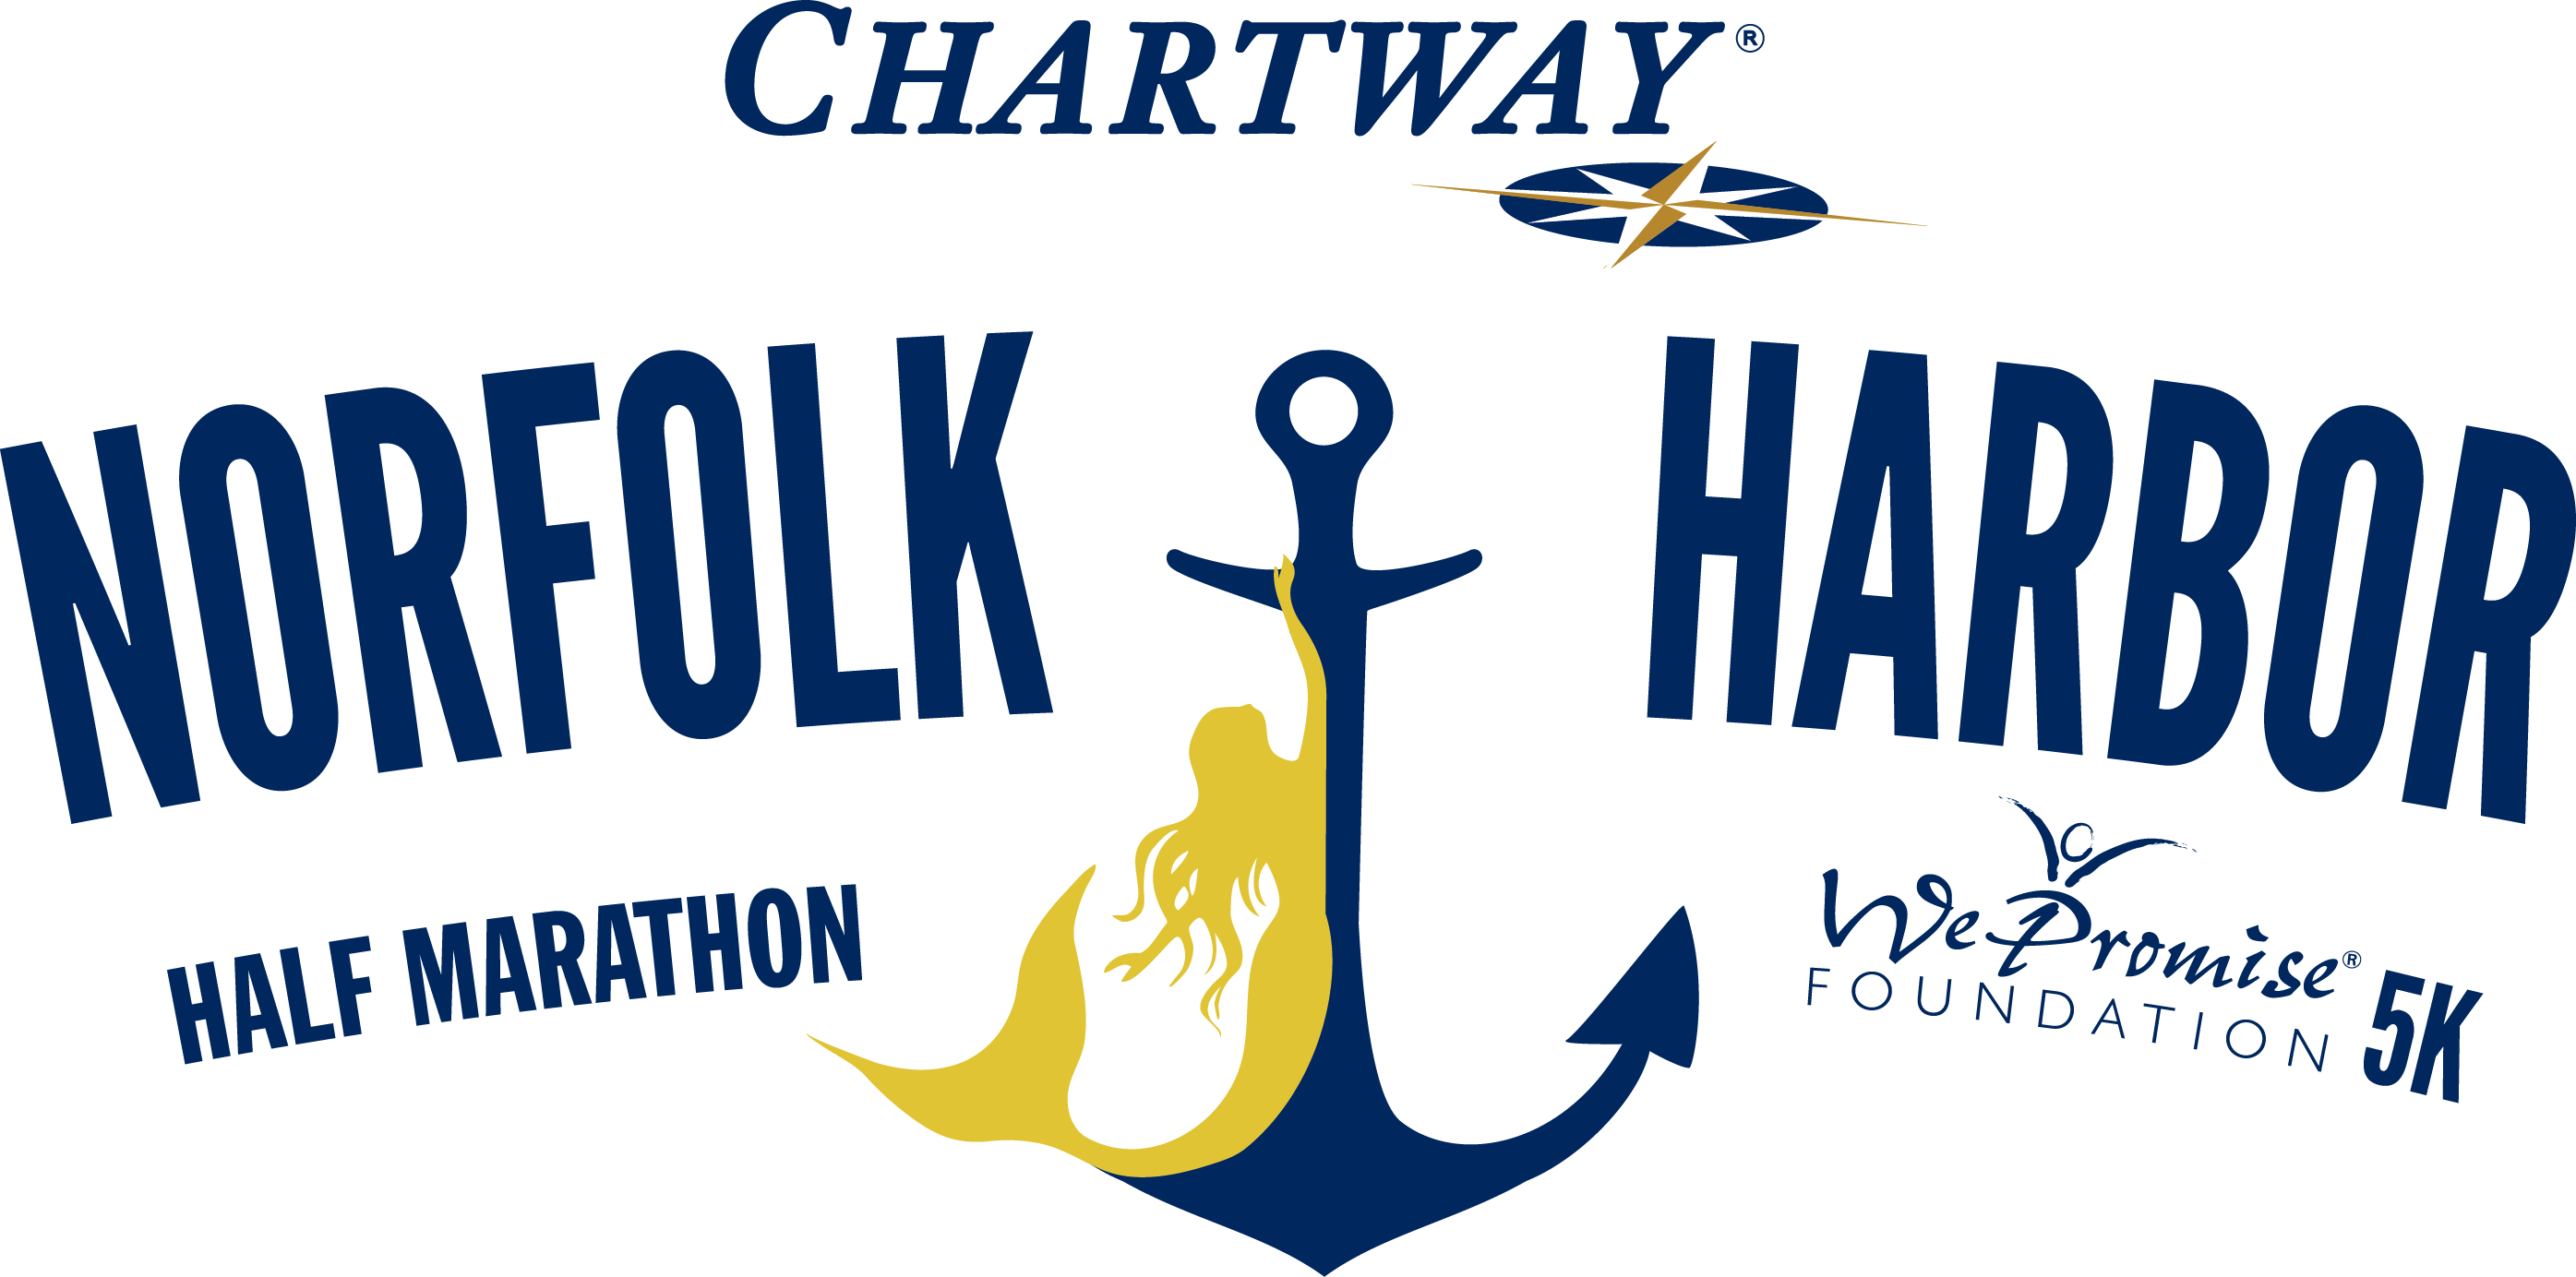 Chartway Norfolk Harbor Half Marathon, We Promise 5K and Kids Mile